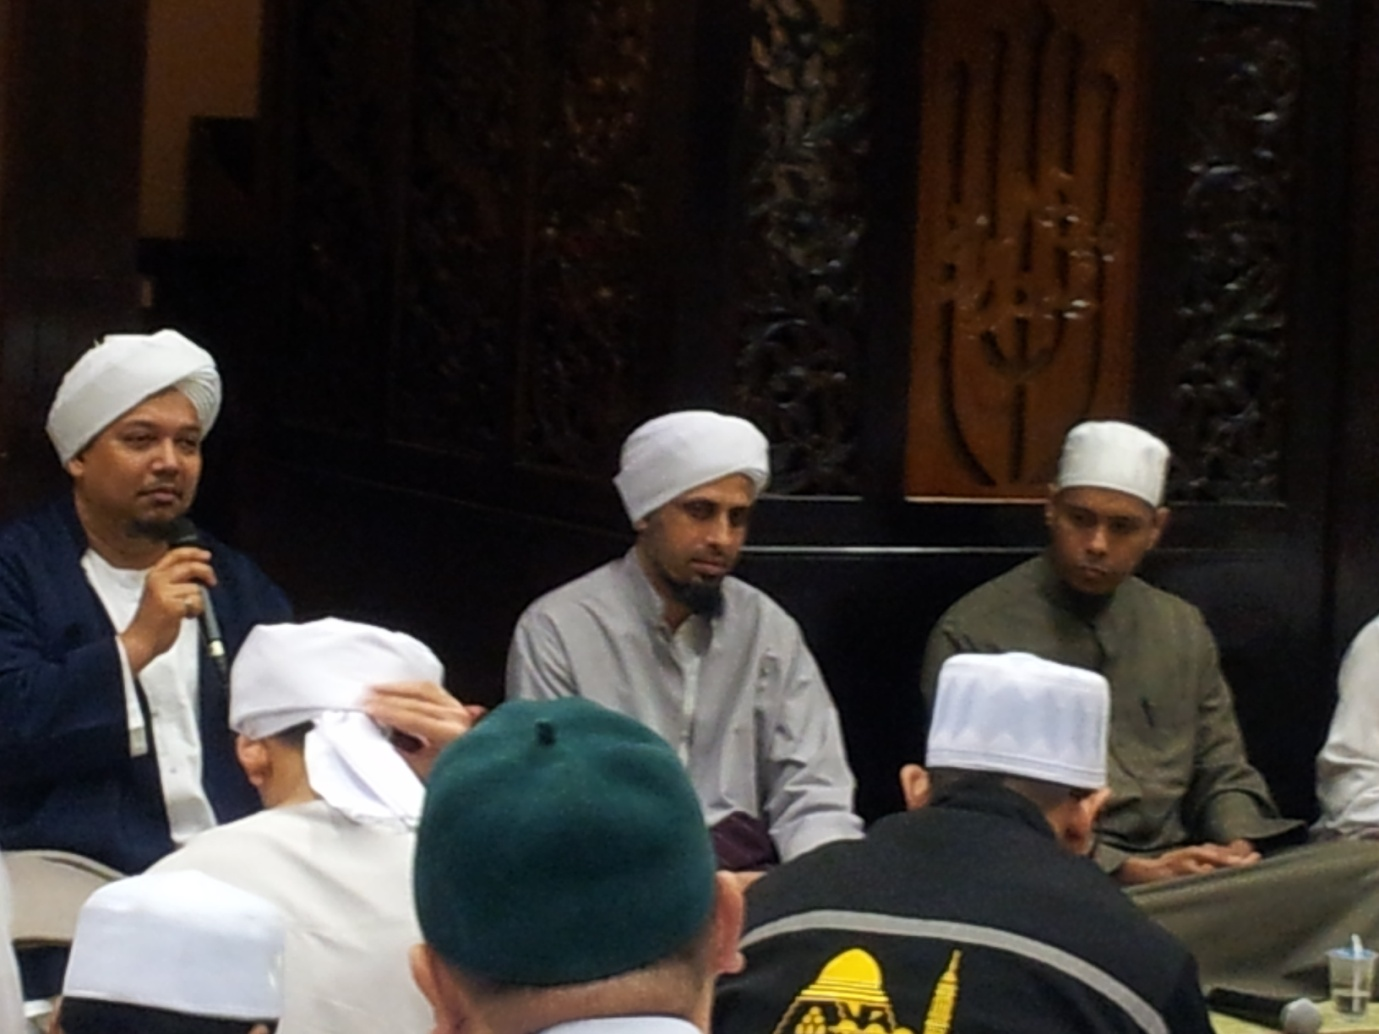 Habib Muhammad bin Abdullah Alaydrus – The Importance of Gathering for the Sake of Allah and His Messenger